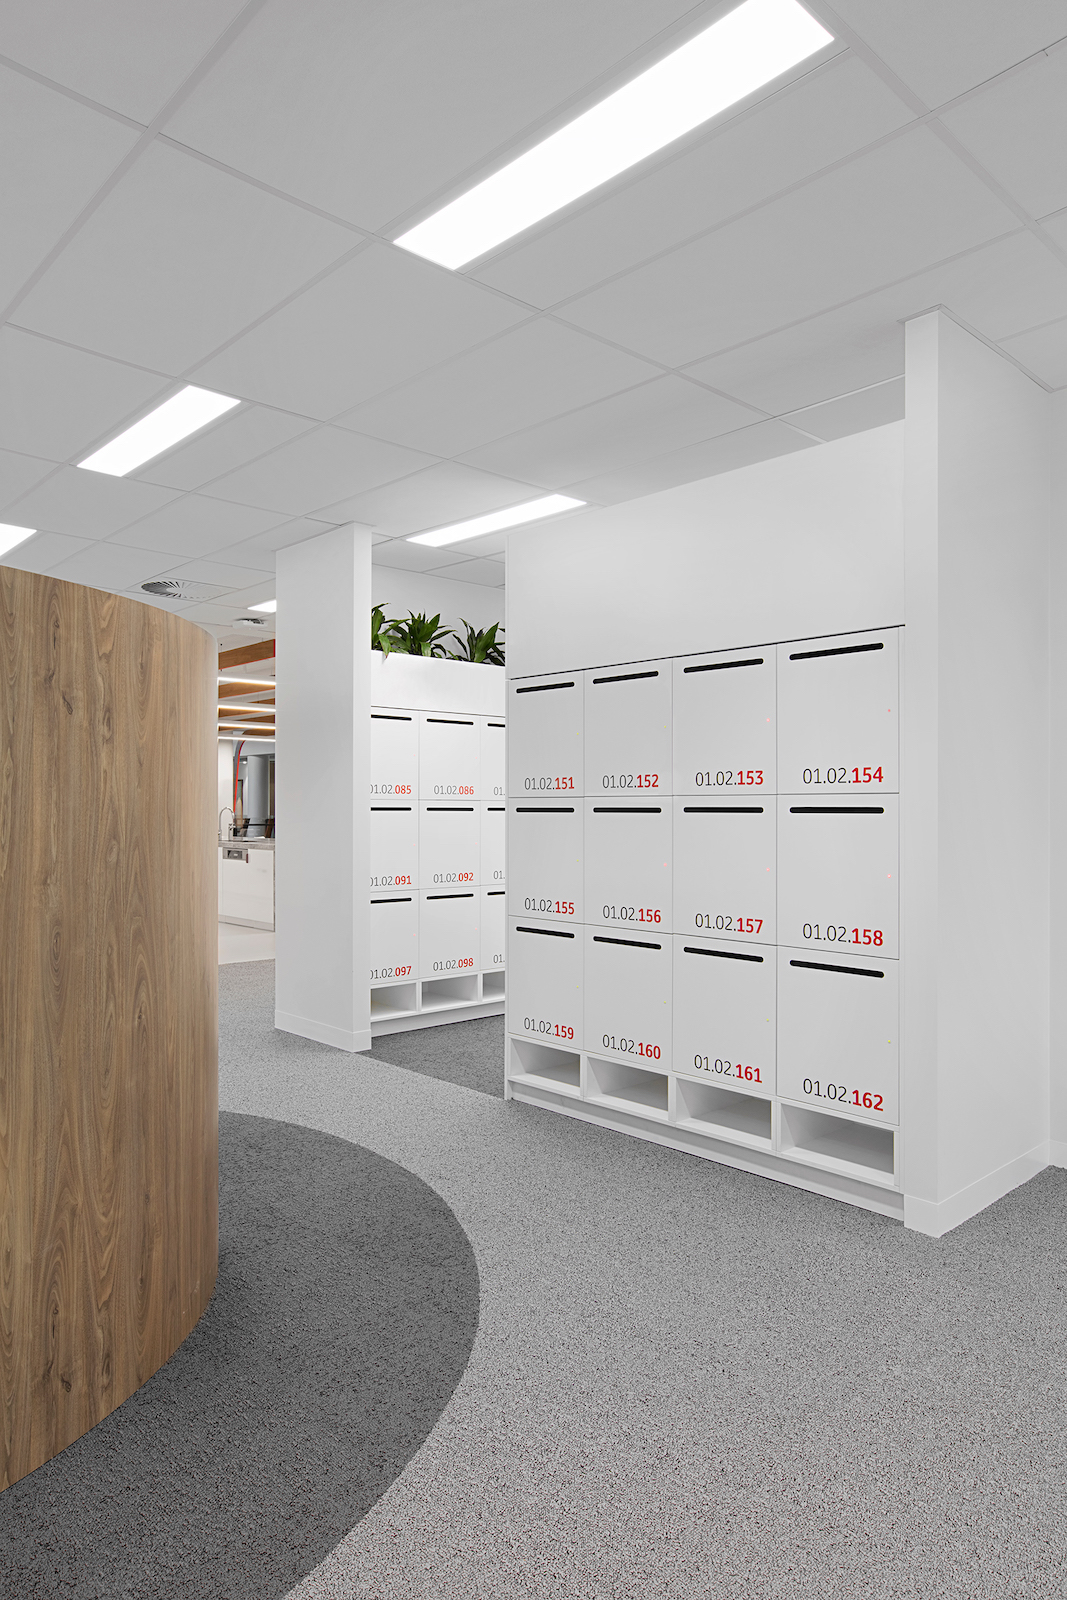 Laminate lockers with mail chute at Toyota